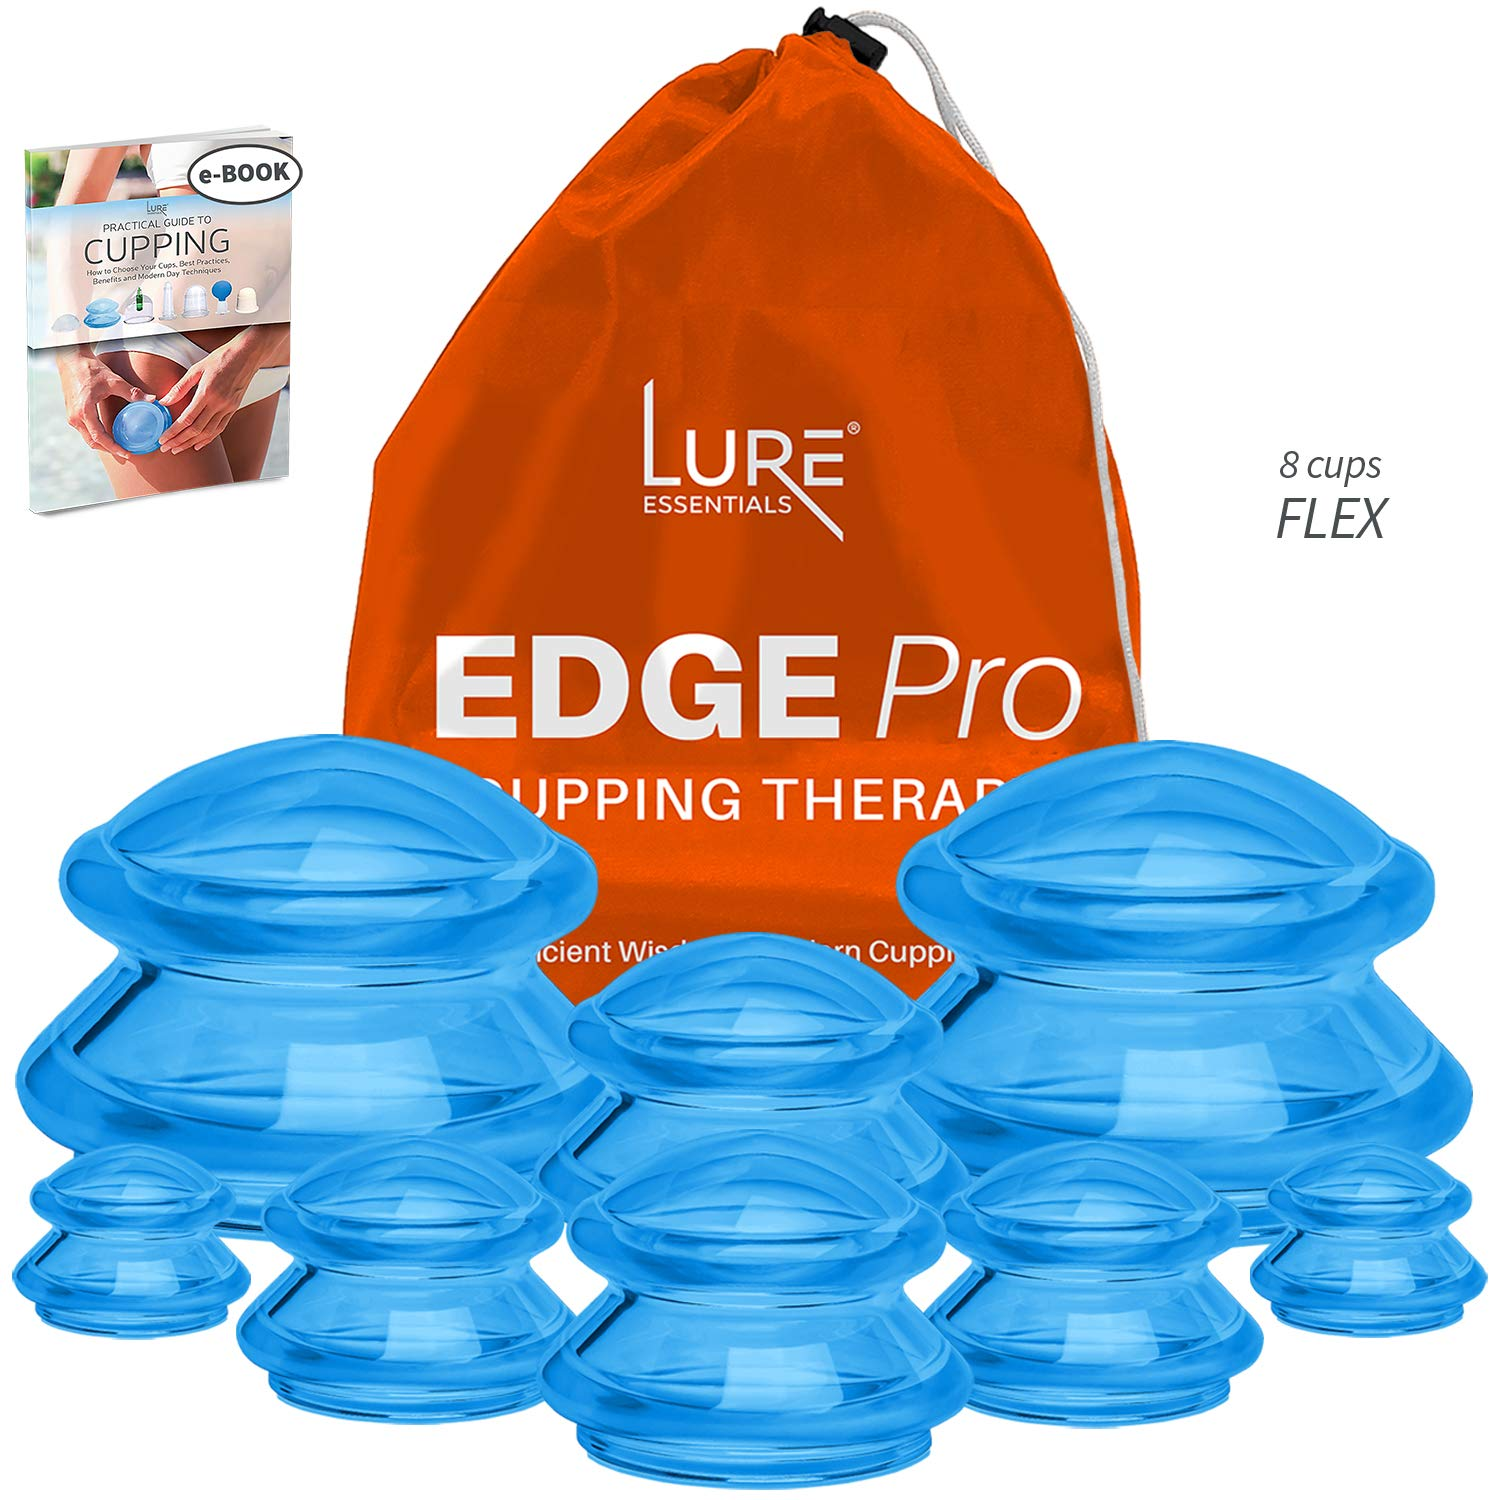 Edge Pro Cupping Therapy Sets - Cups for Cupping Silicone Vacuum Suction for Muscle, Joint Pain, Cellulite & More (Brilliant Blue, 8) by Lure Essentials